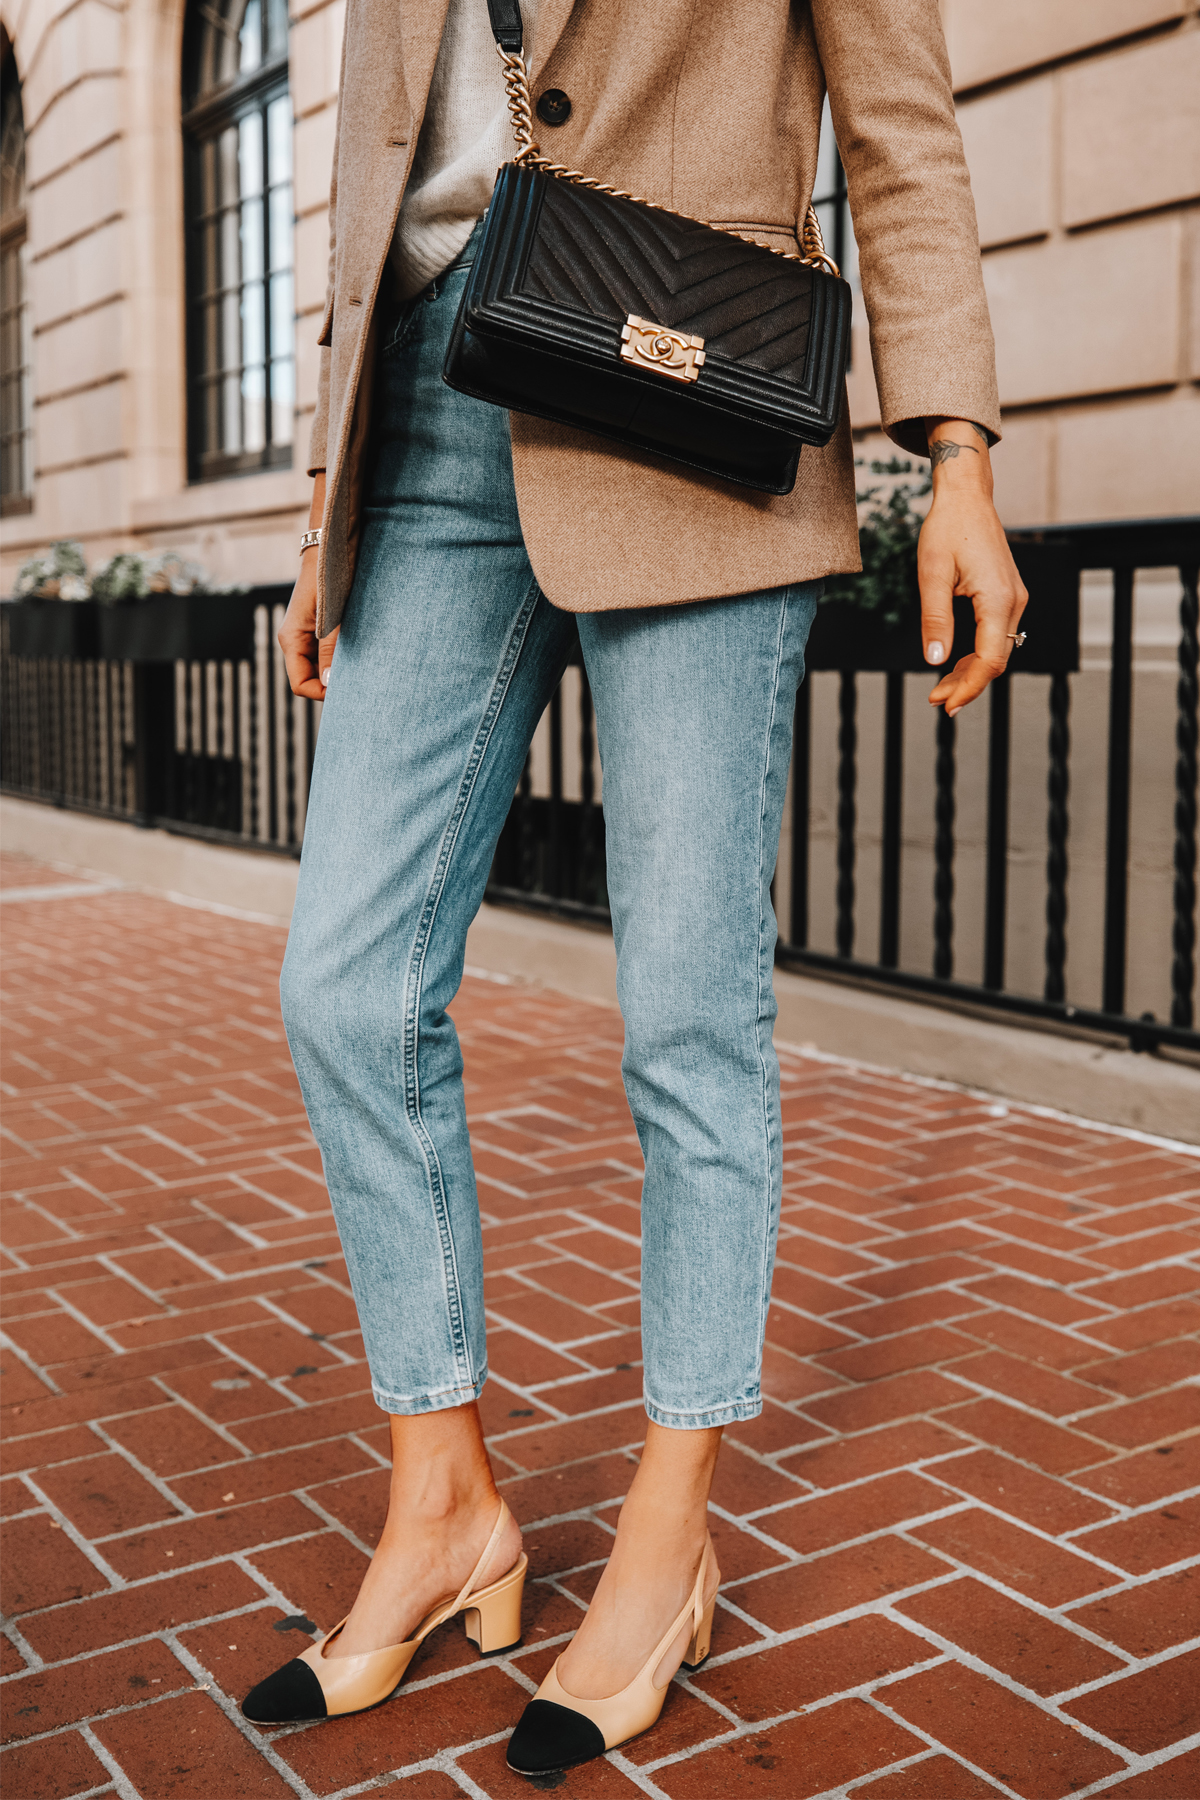 Fashion Jackson Wearing Everlane Cheeky Jeans Chanel Slingbacks Chanel Boy Bag 1